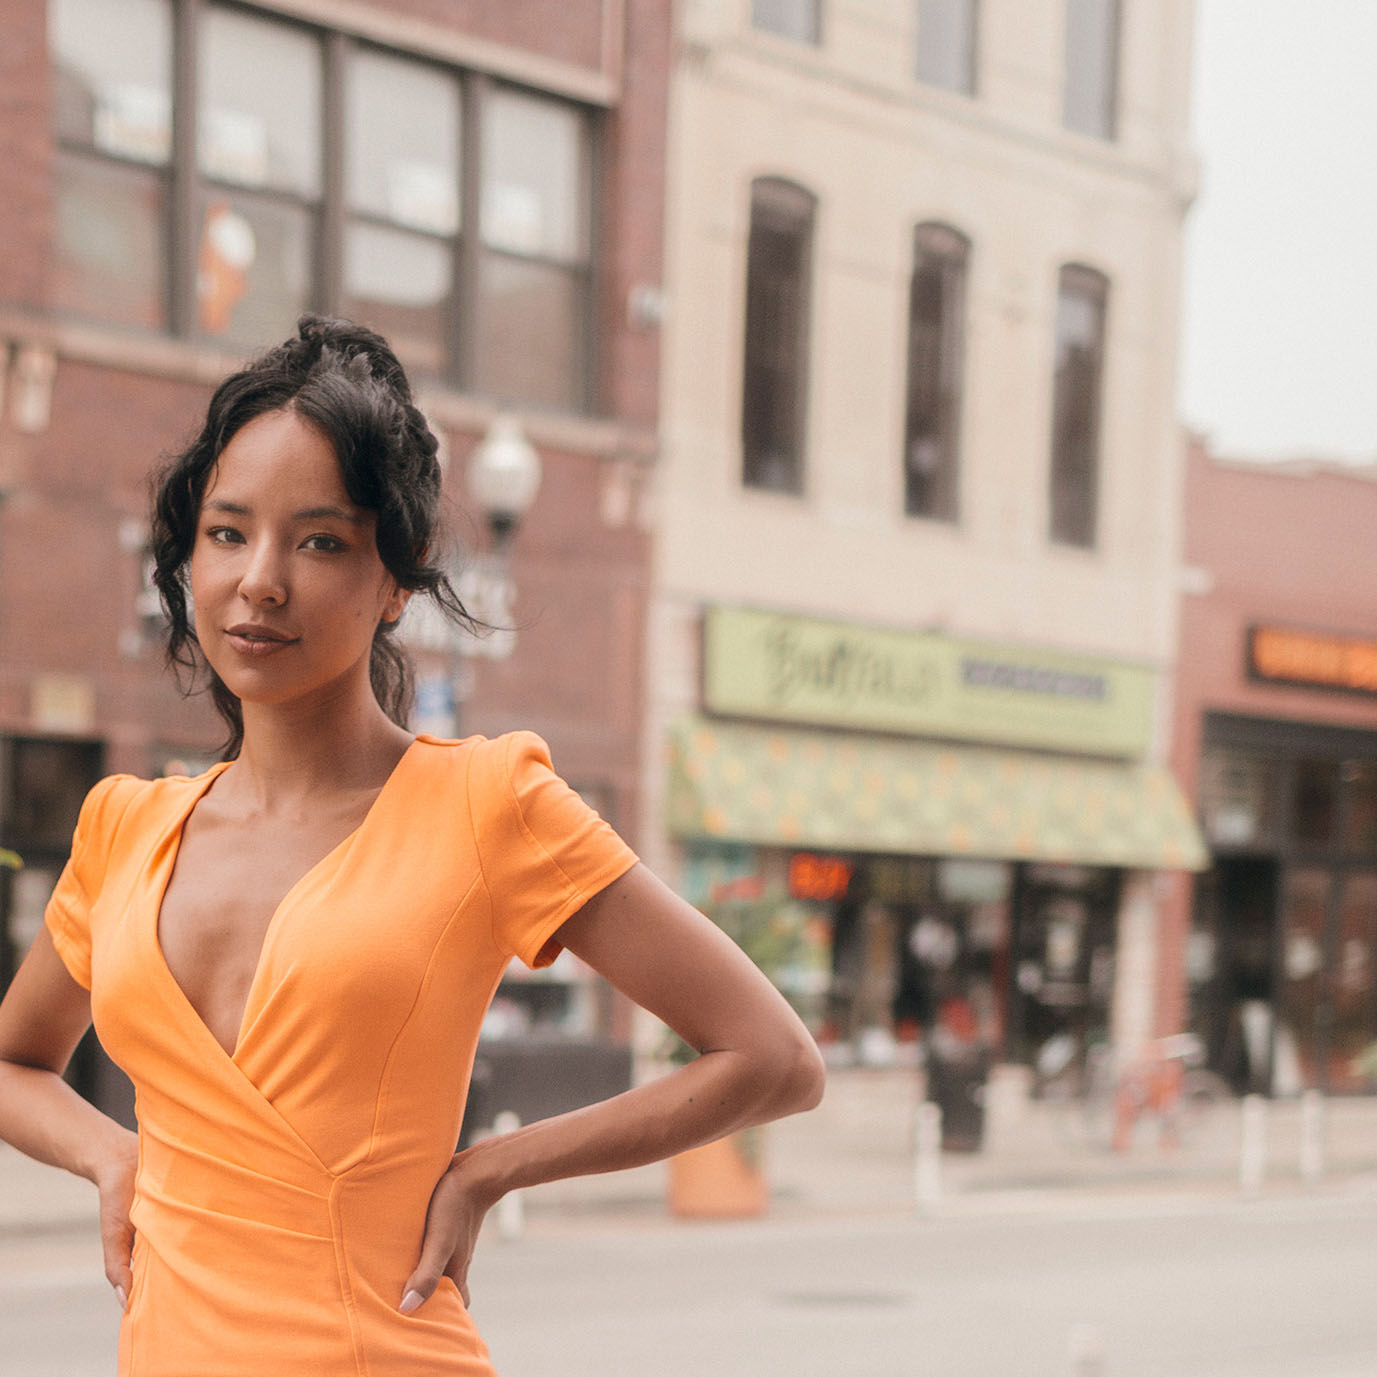 woman in orange dress on street